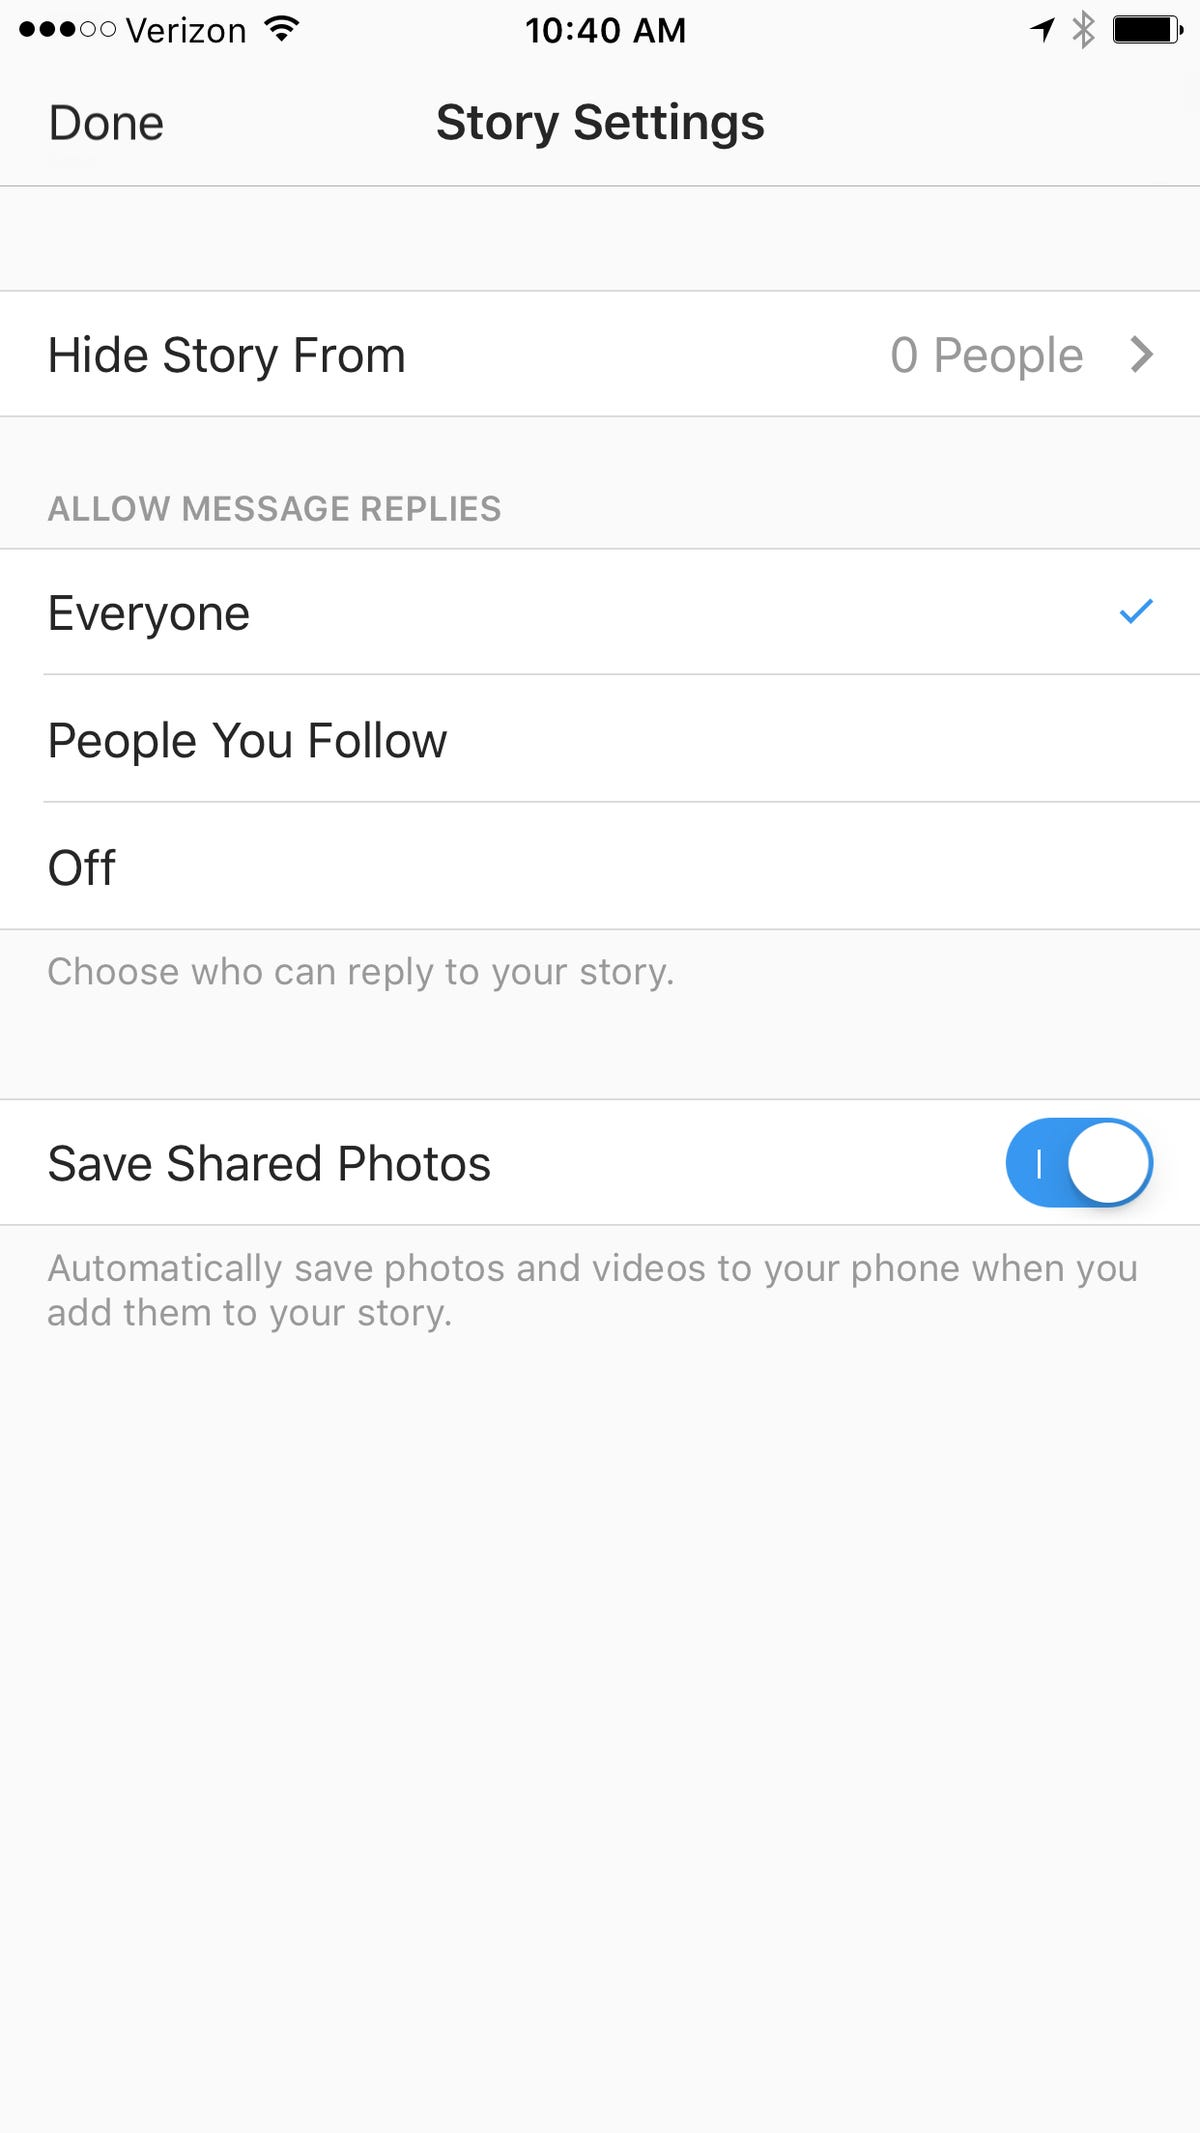 How To Make Instagram Story - Insta Stories Tips Hacks